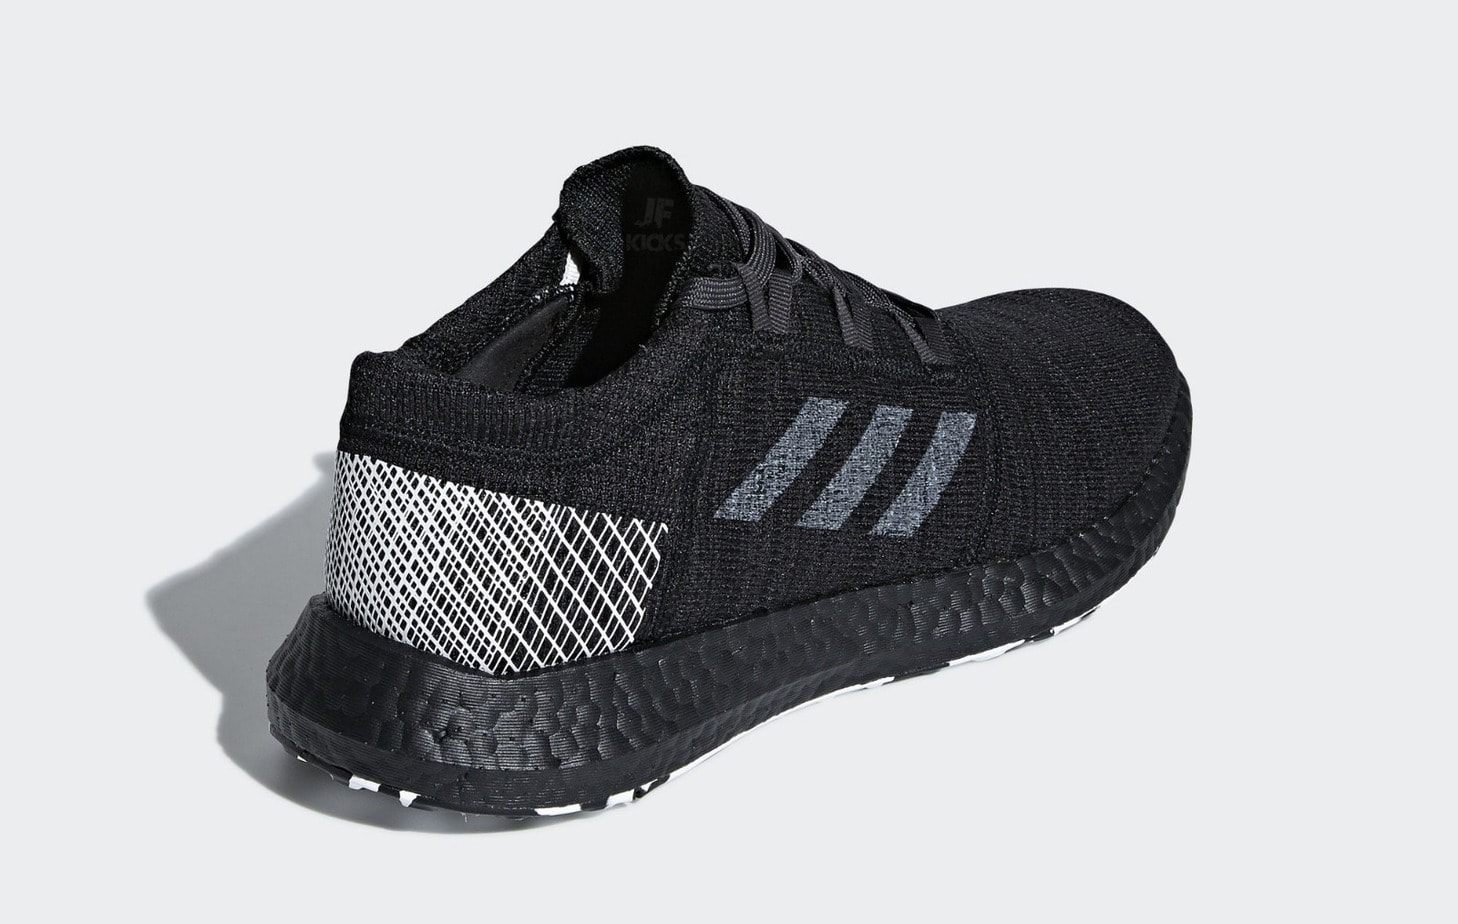 6b2f32cd4065f Check out the official images below for a better look at the 2018 adidas  Pure Boost